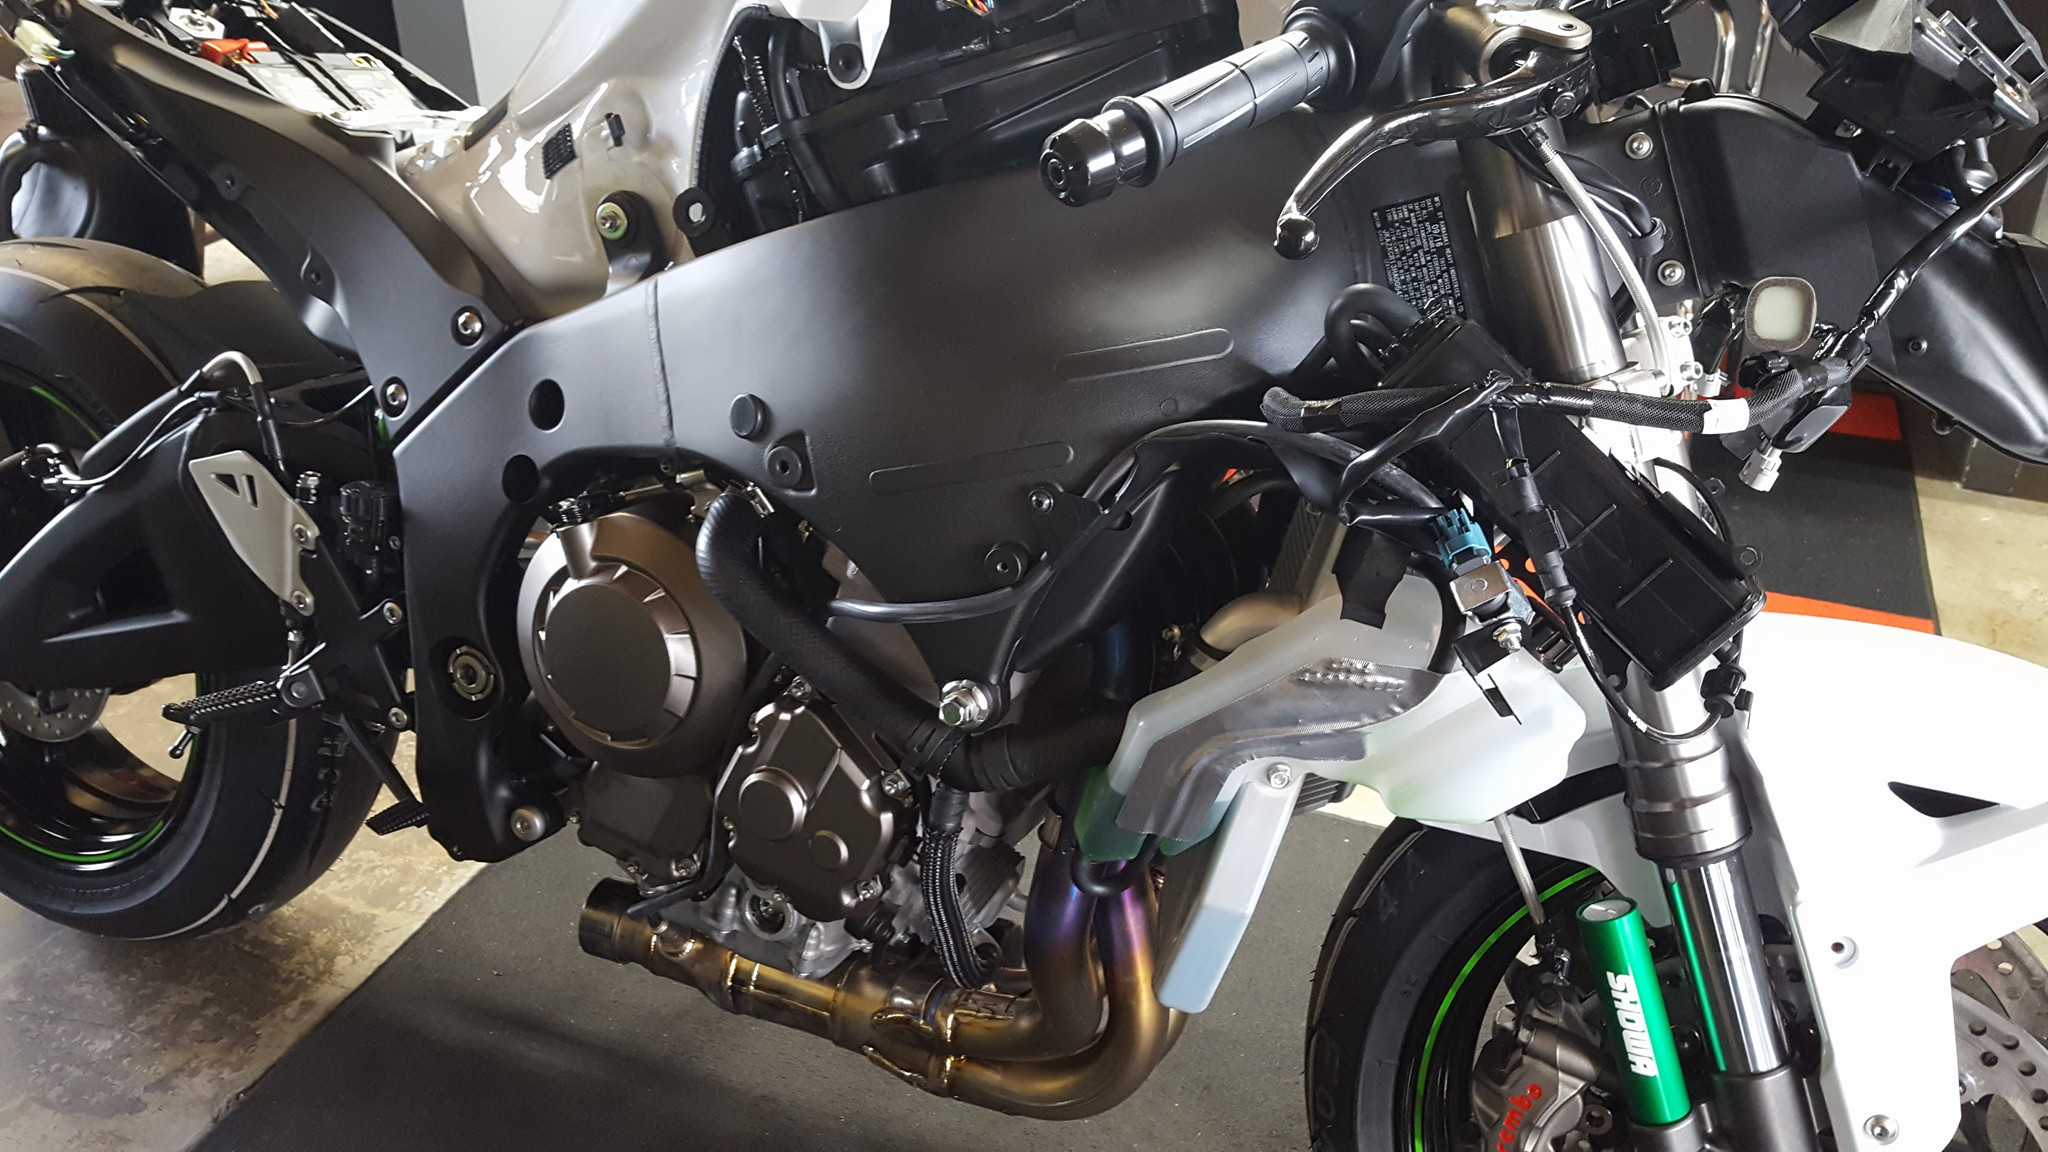 ZX10R motorcycle stripped naked